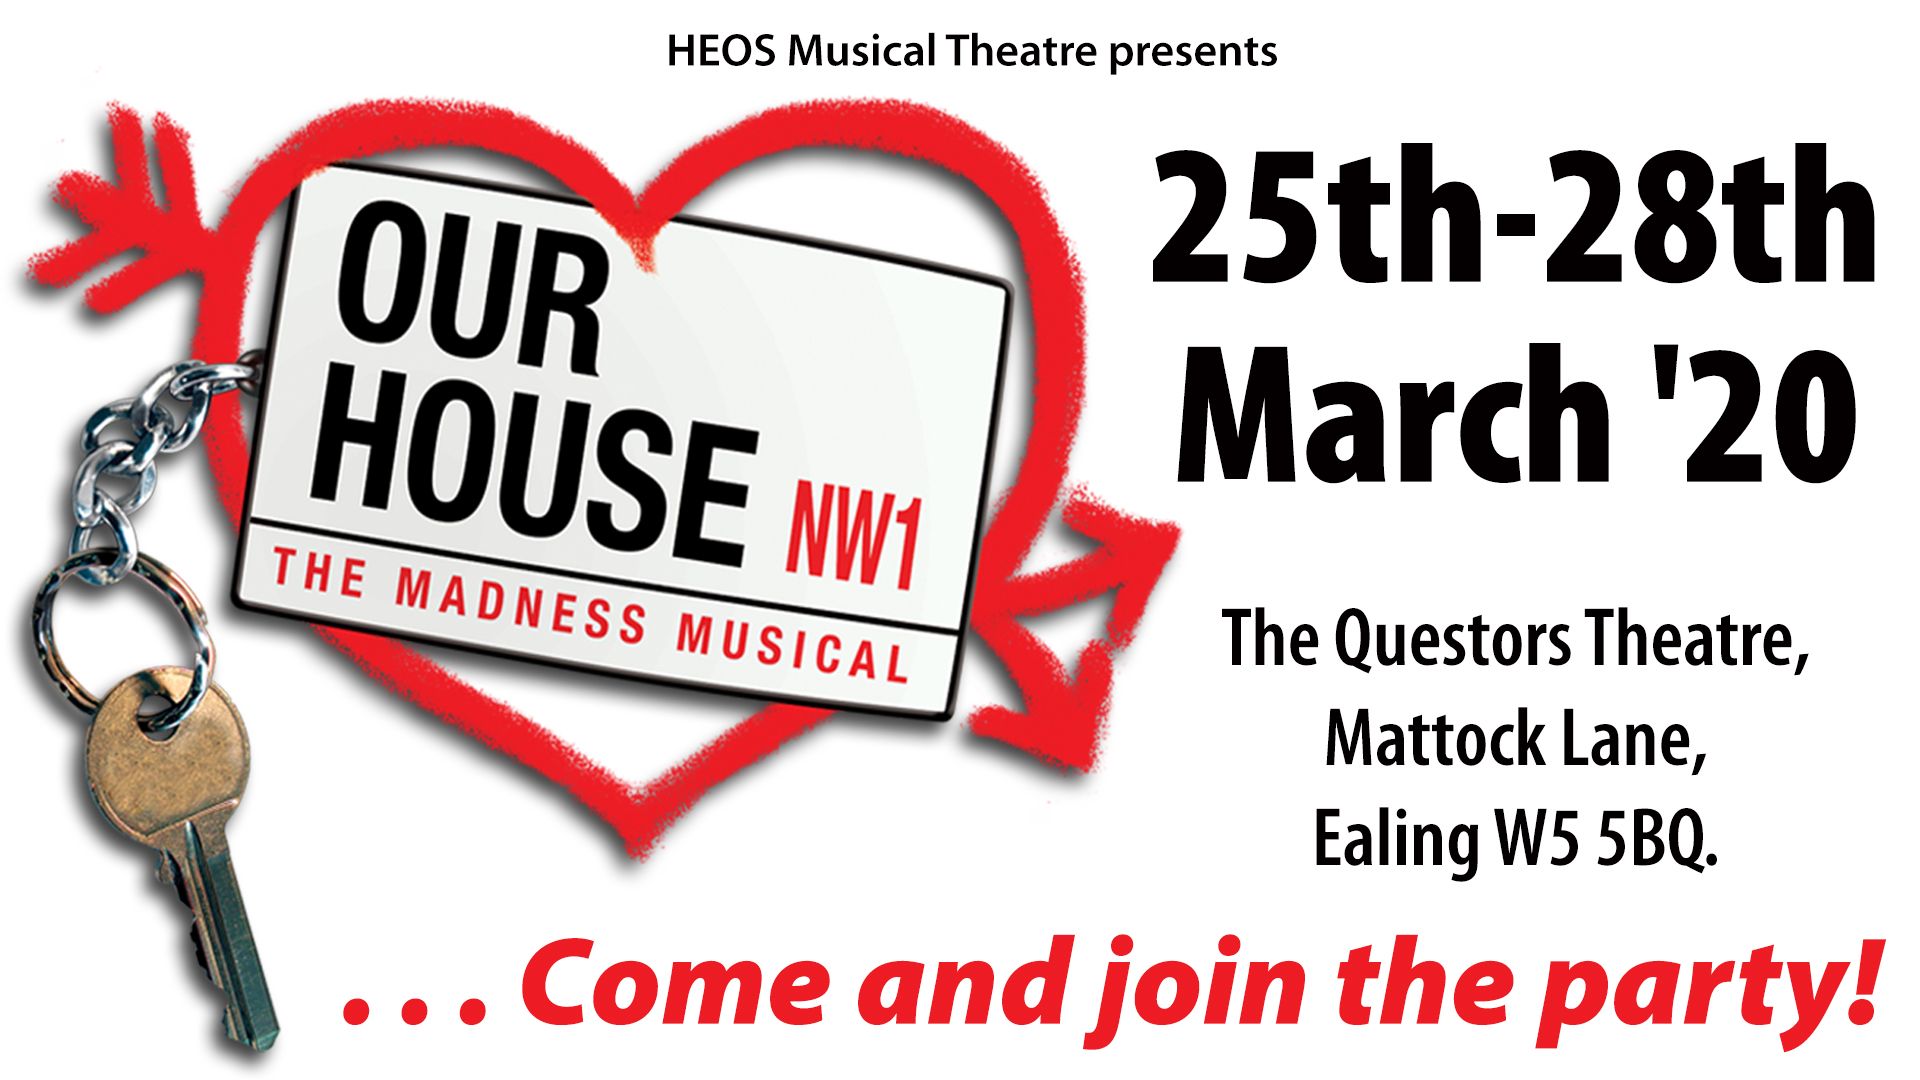 HEOS Musical Theatre presents Our House!